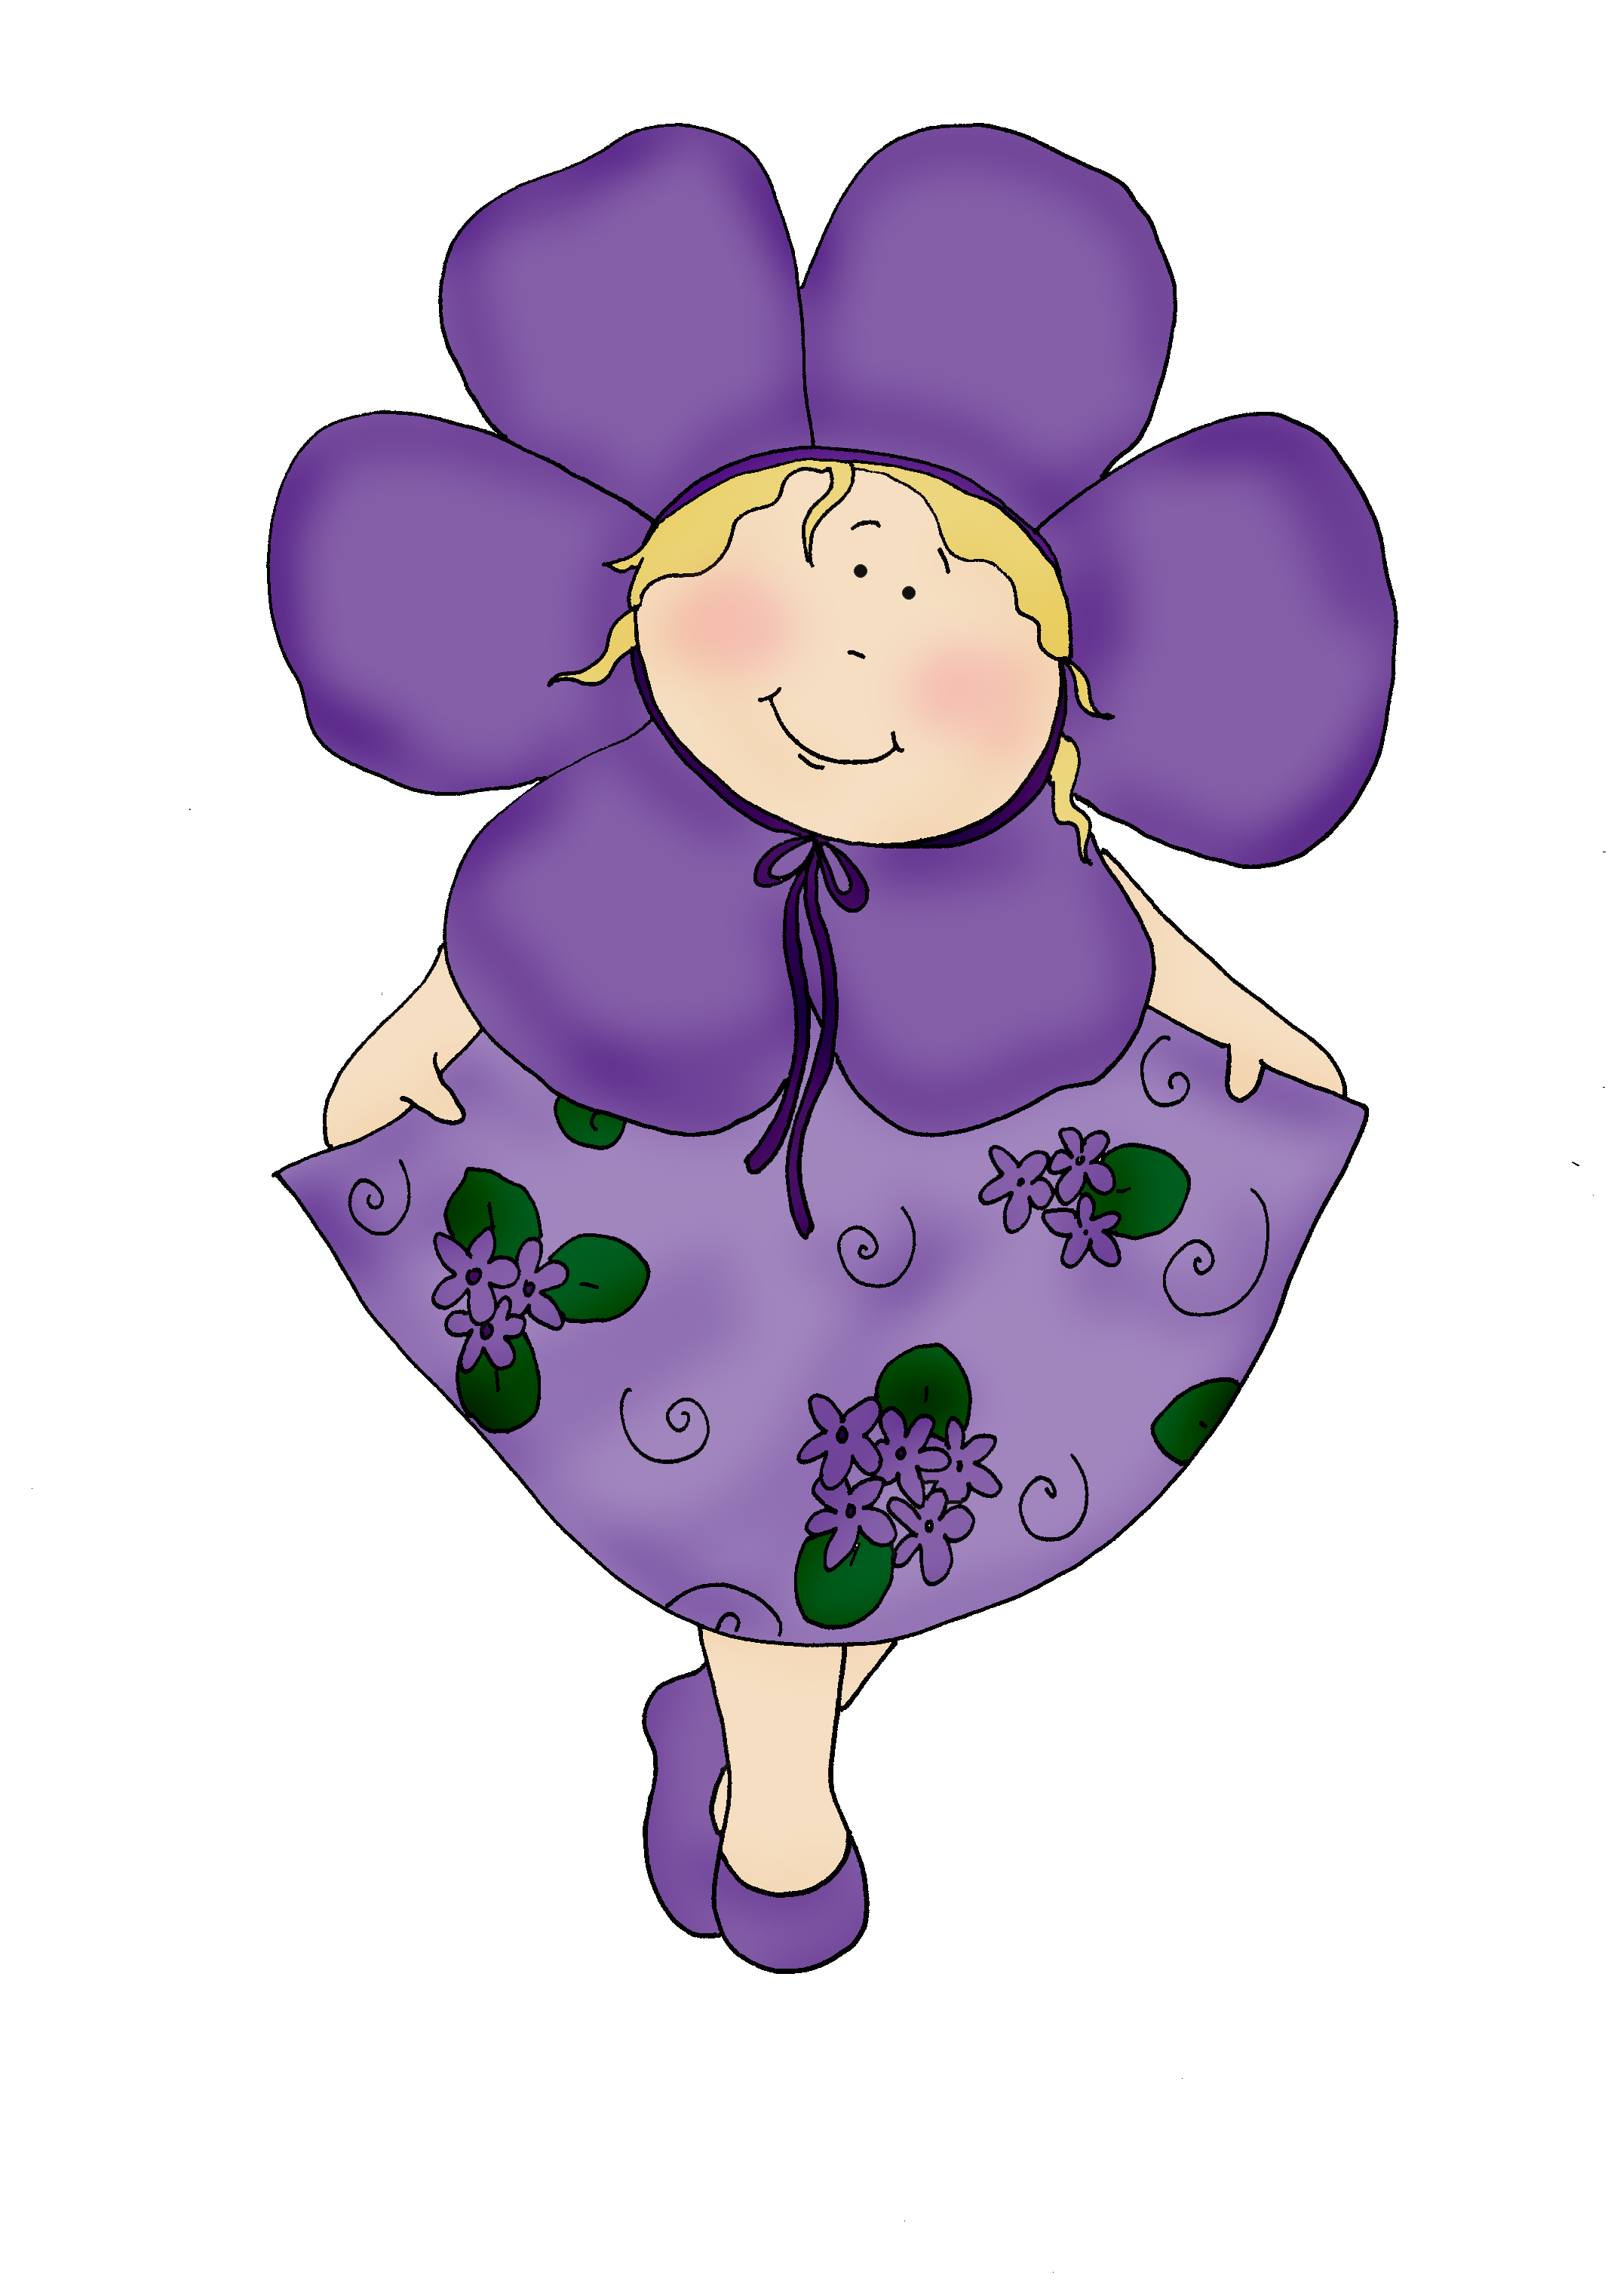 http://deariedollsdigis.blog.com/files/2013/01/Violet-Girl-color.png